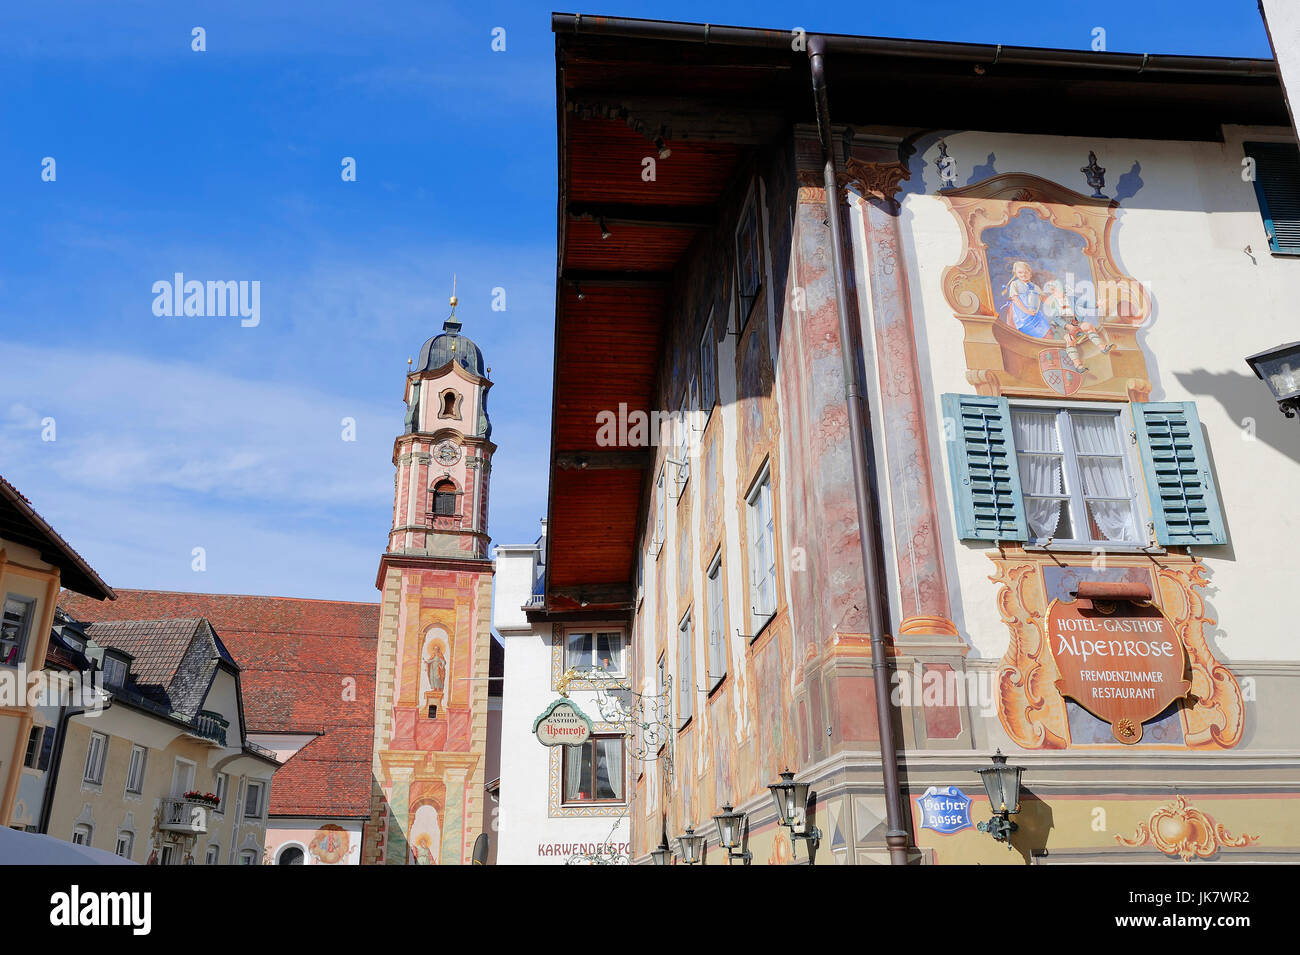 Restaurant 'Alpenrose' with paintings and parish church St. Peter and Paul, Mittenwald, Werdenfelser Land, - Stock Image